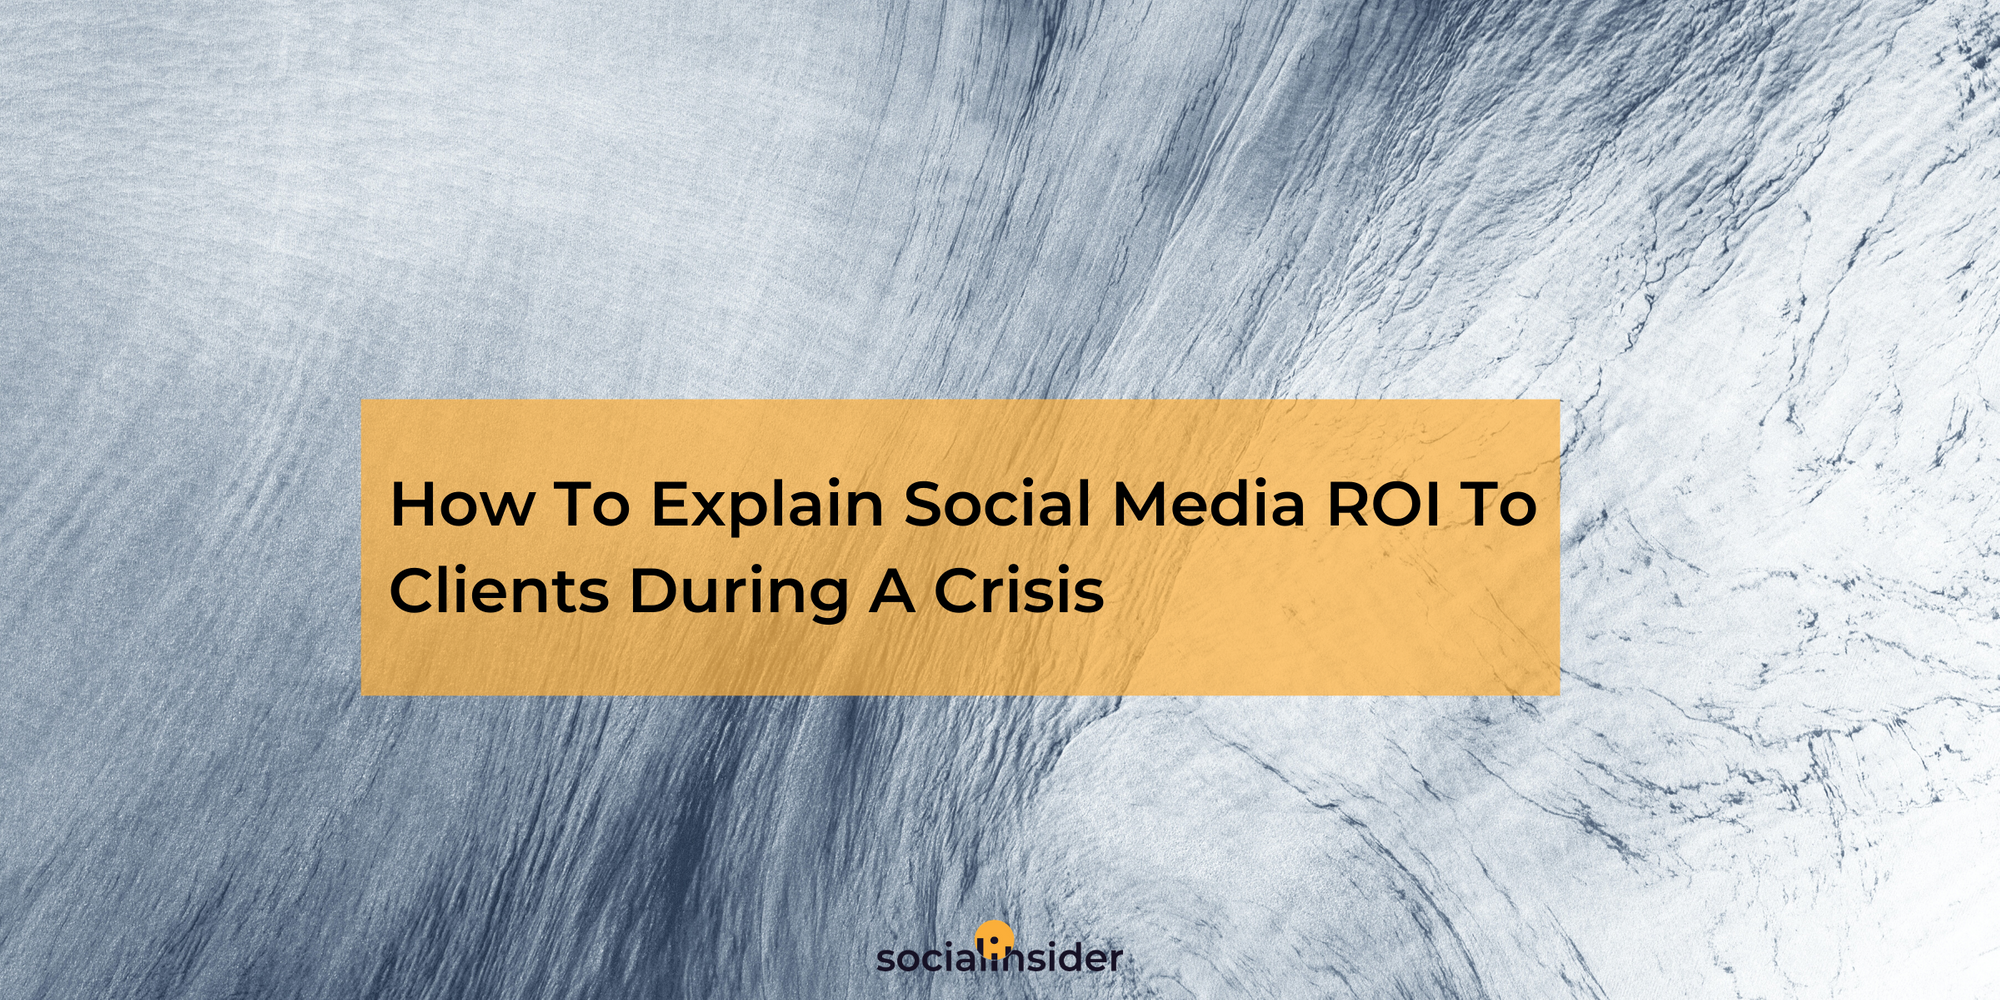 How To Explain Social Media ROI To Clients During A Crisis